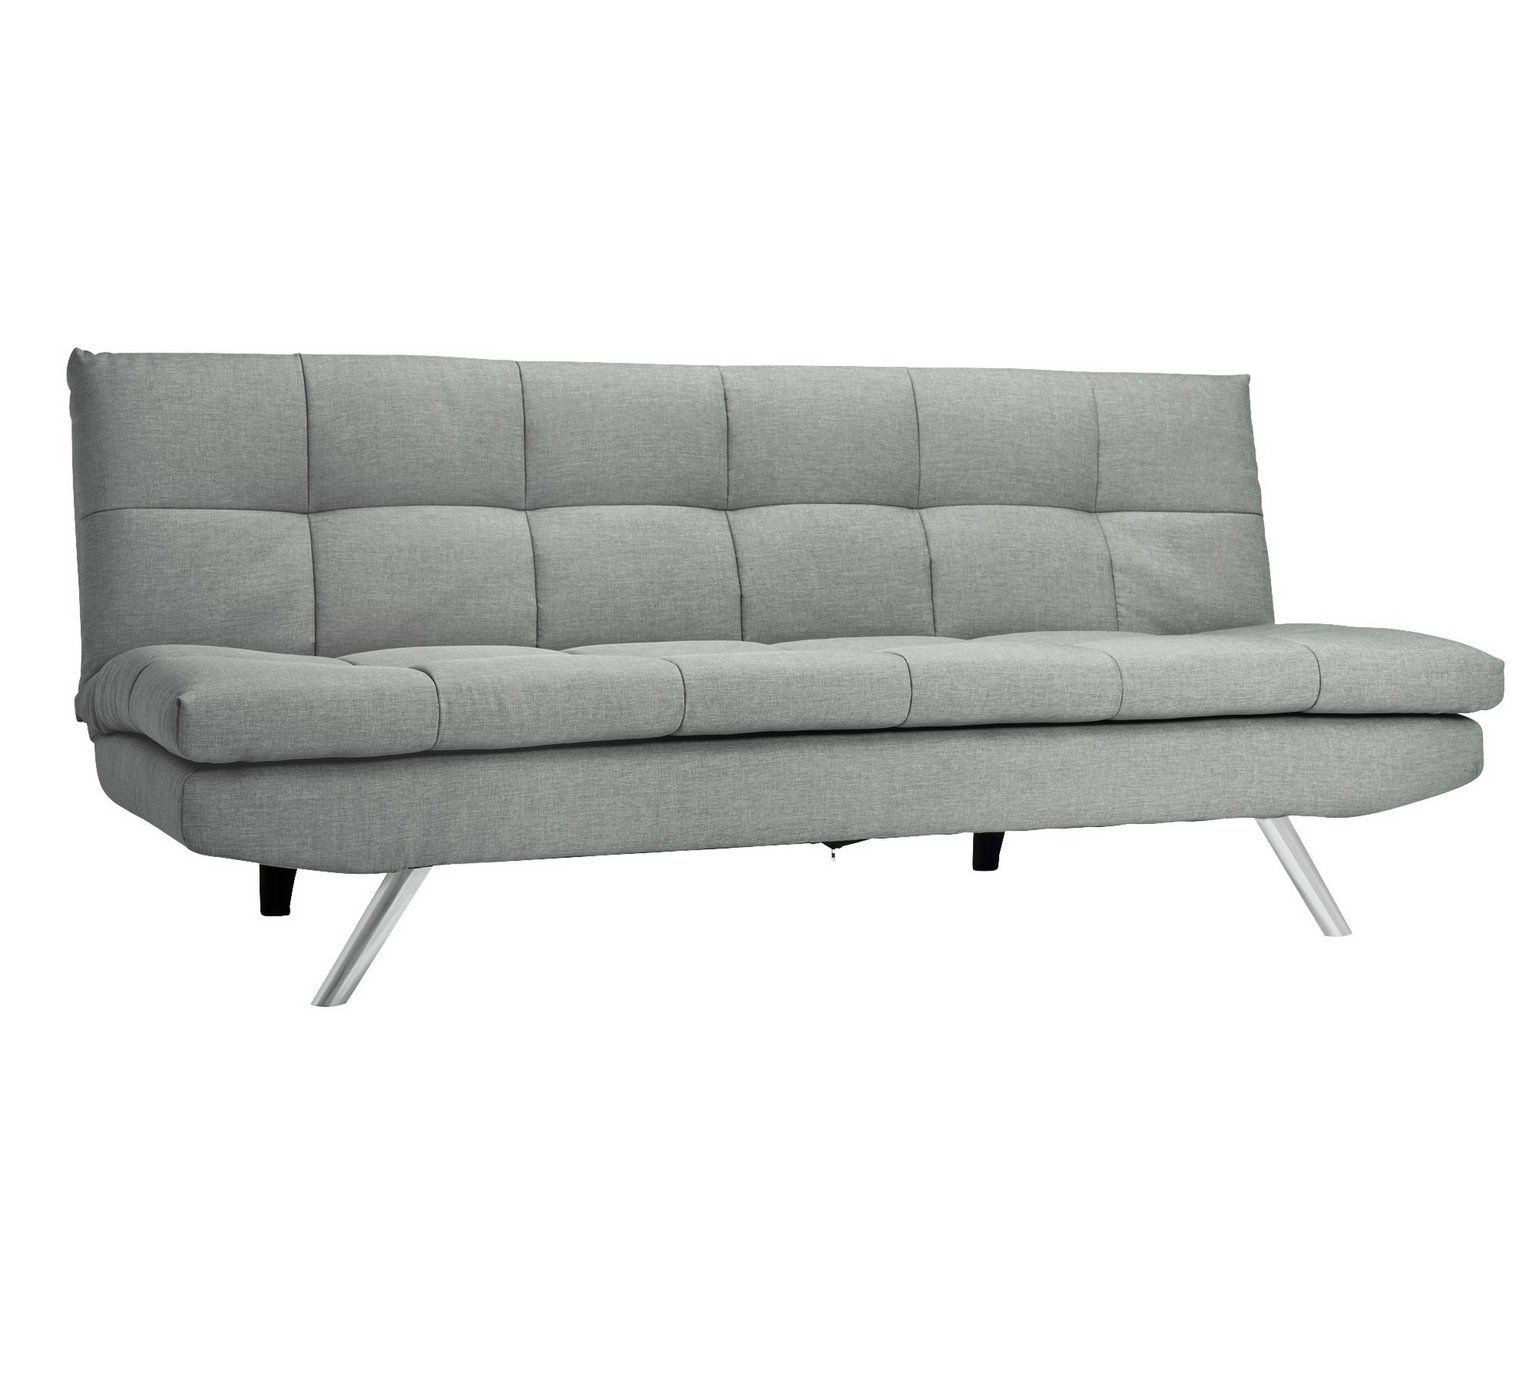 Buy Collection Nolan 3 Seater Fabric Sofa Bed - Light Grey at Argos ...